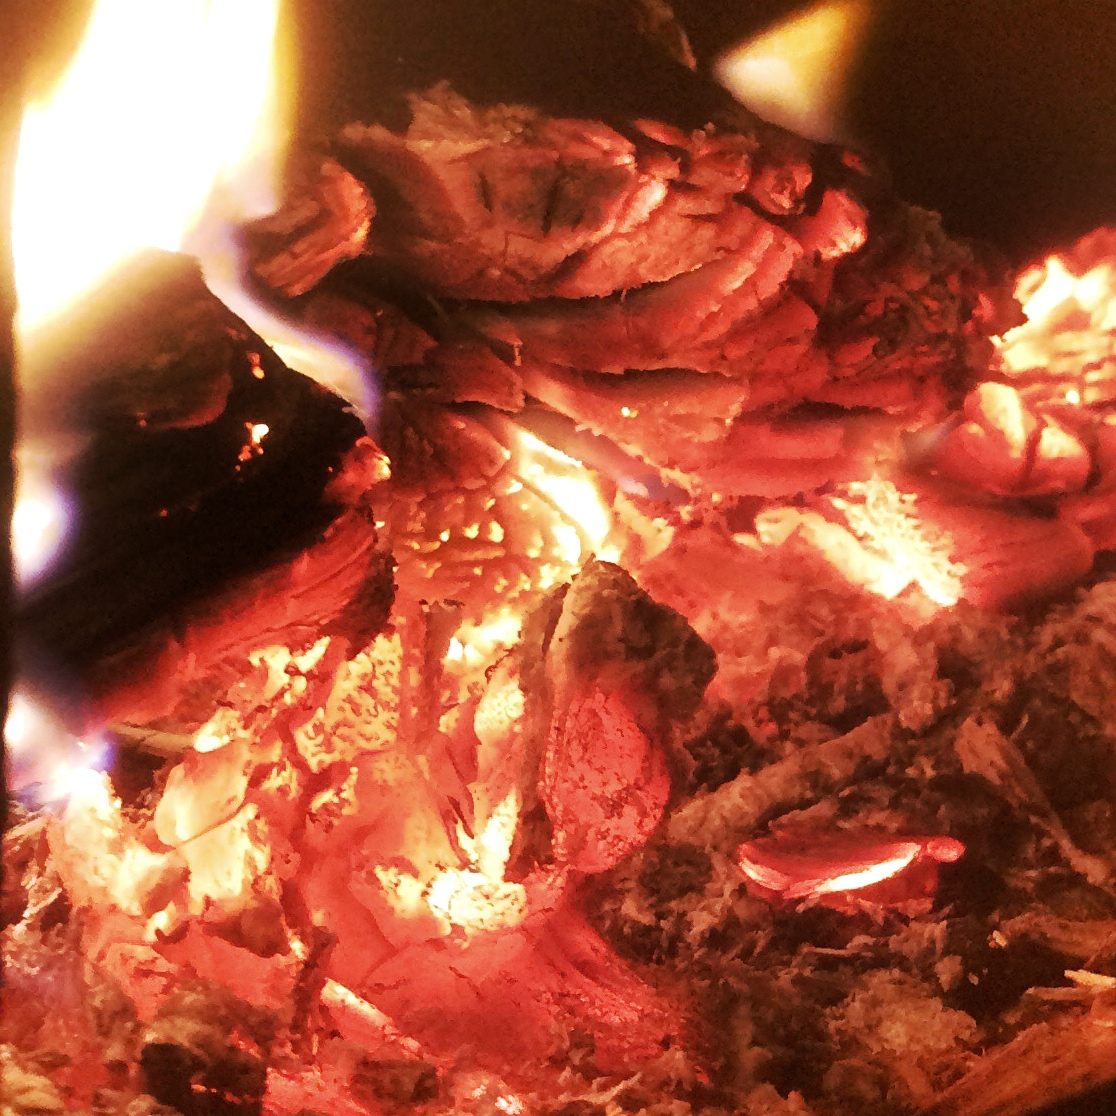 You need red hot coals like those shown above. Don't drop it on white coals covered in soot!